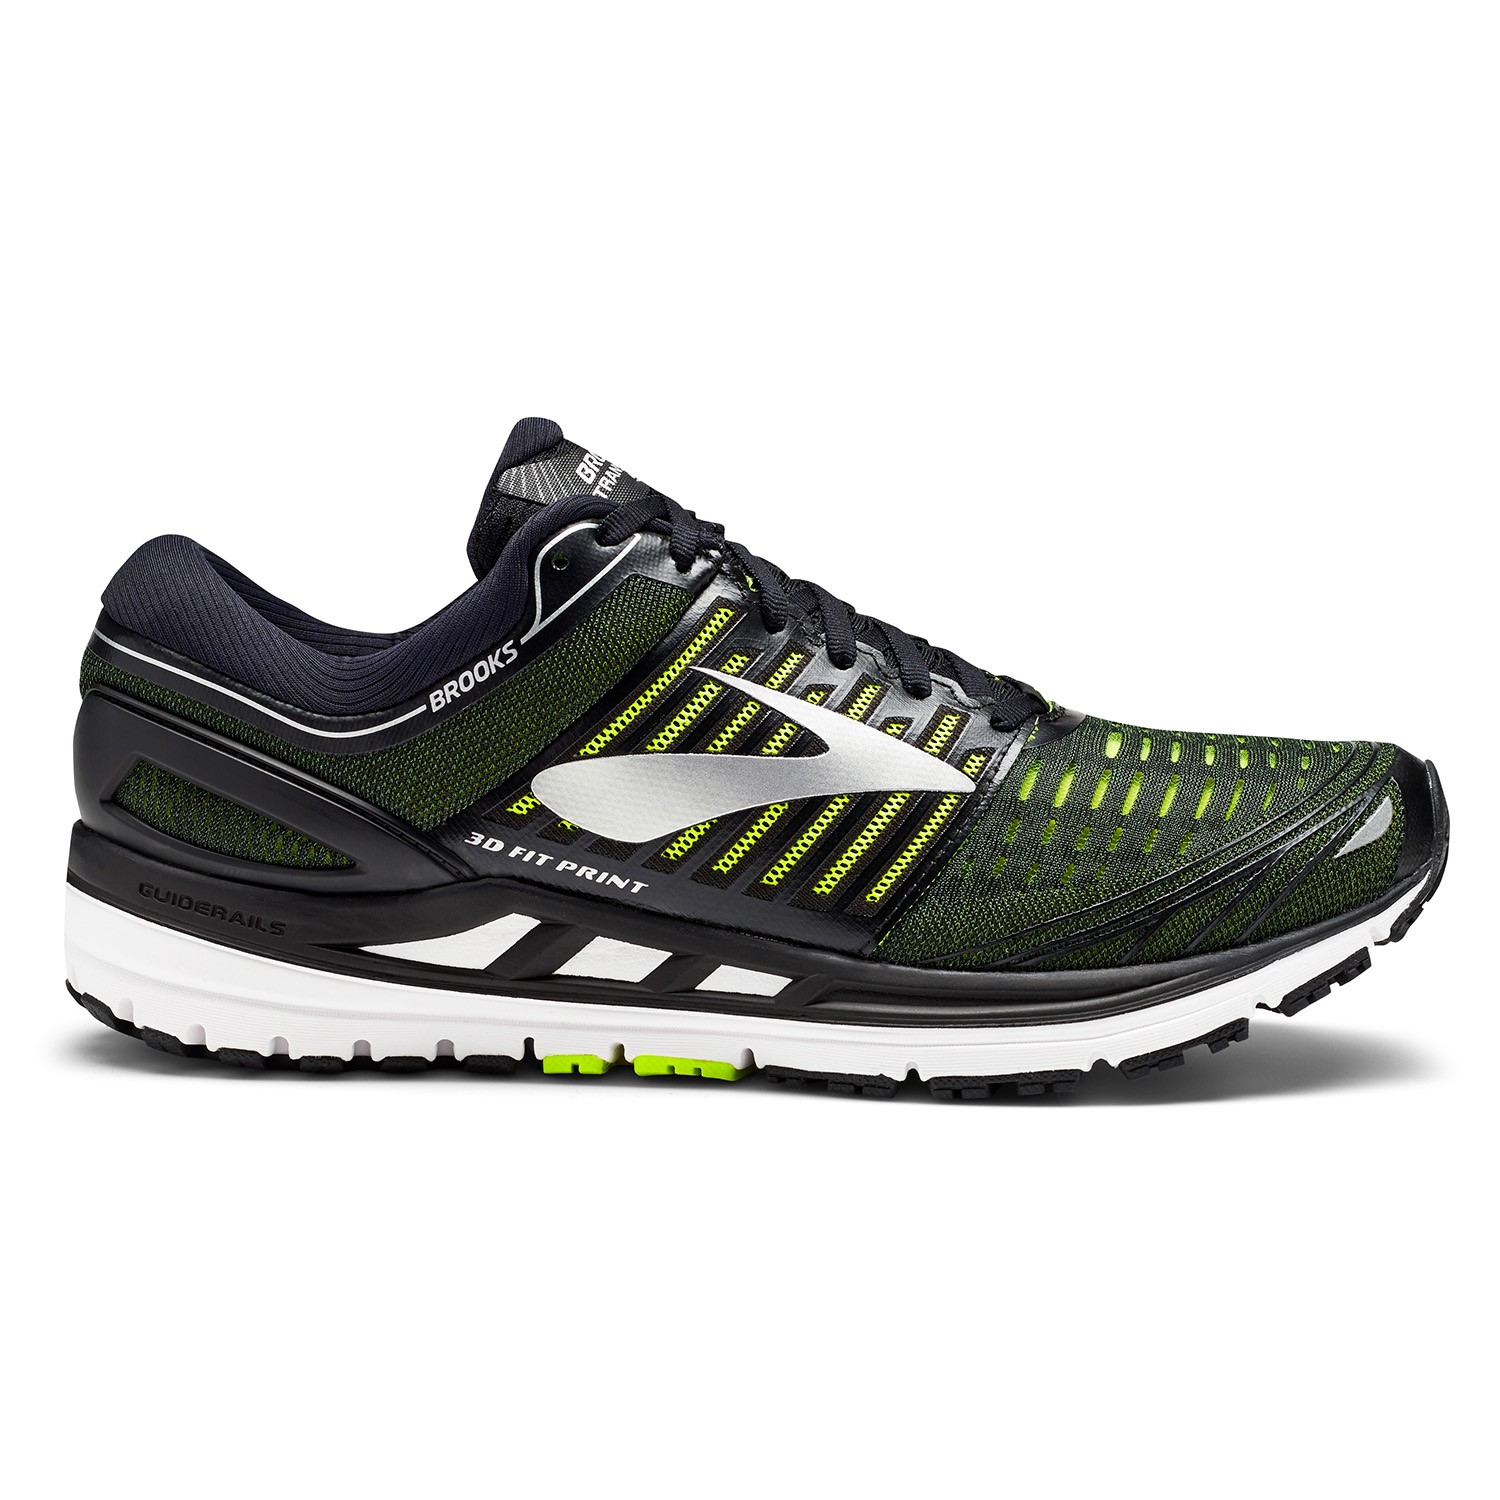 b188cbe7c8d34 Brooks Transcend 5 - Mens Running Shoes - Black Nightlife Silver ...